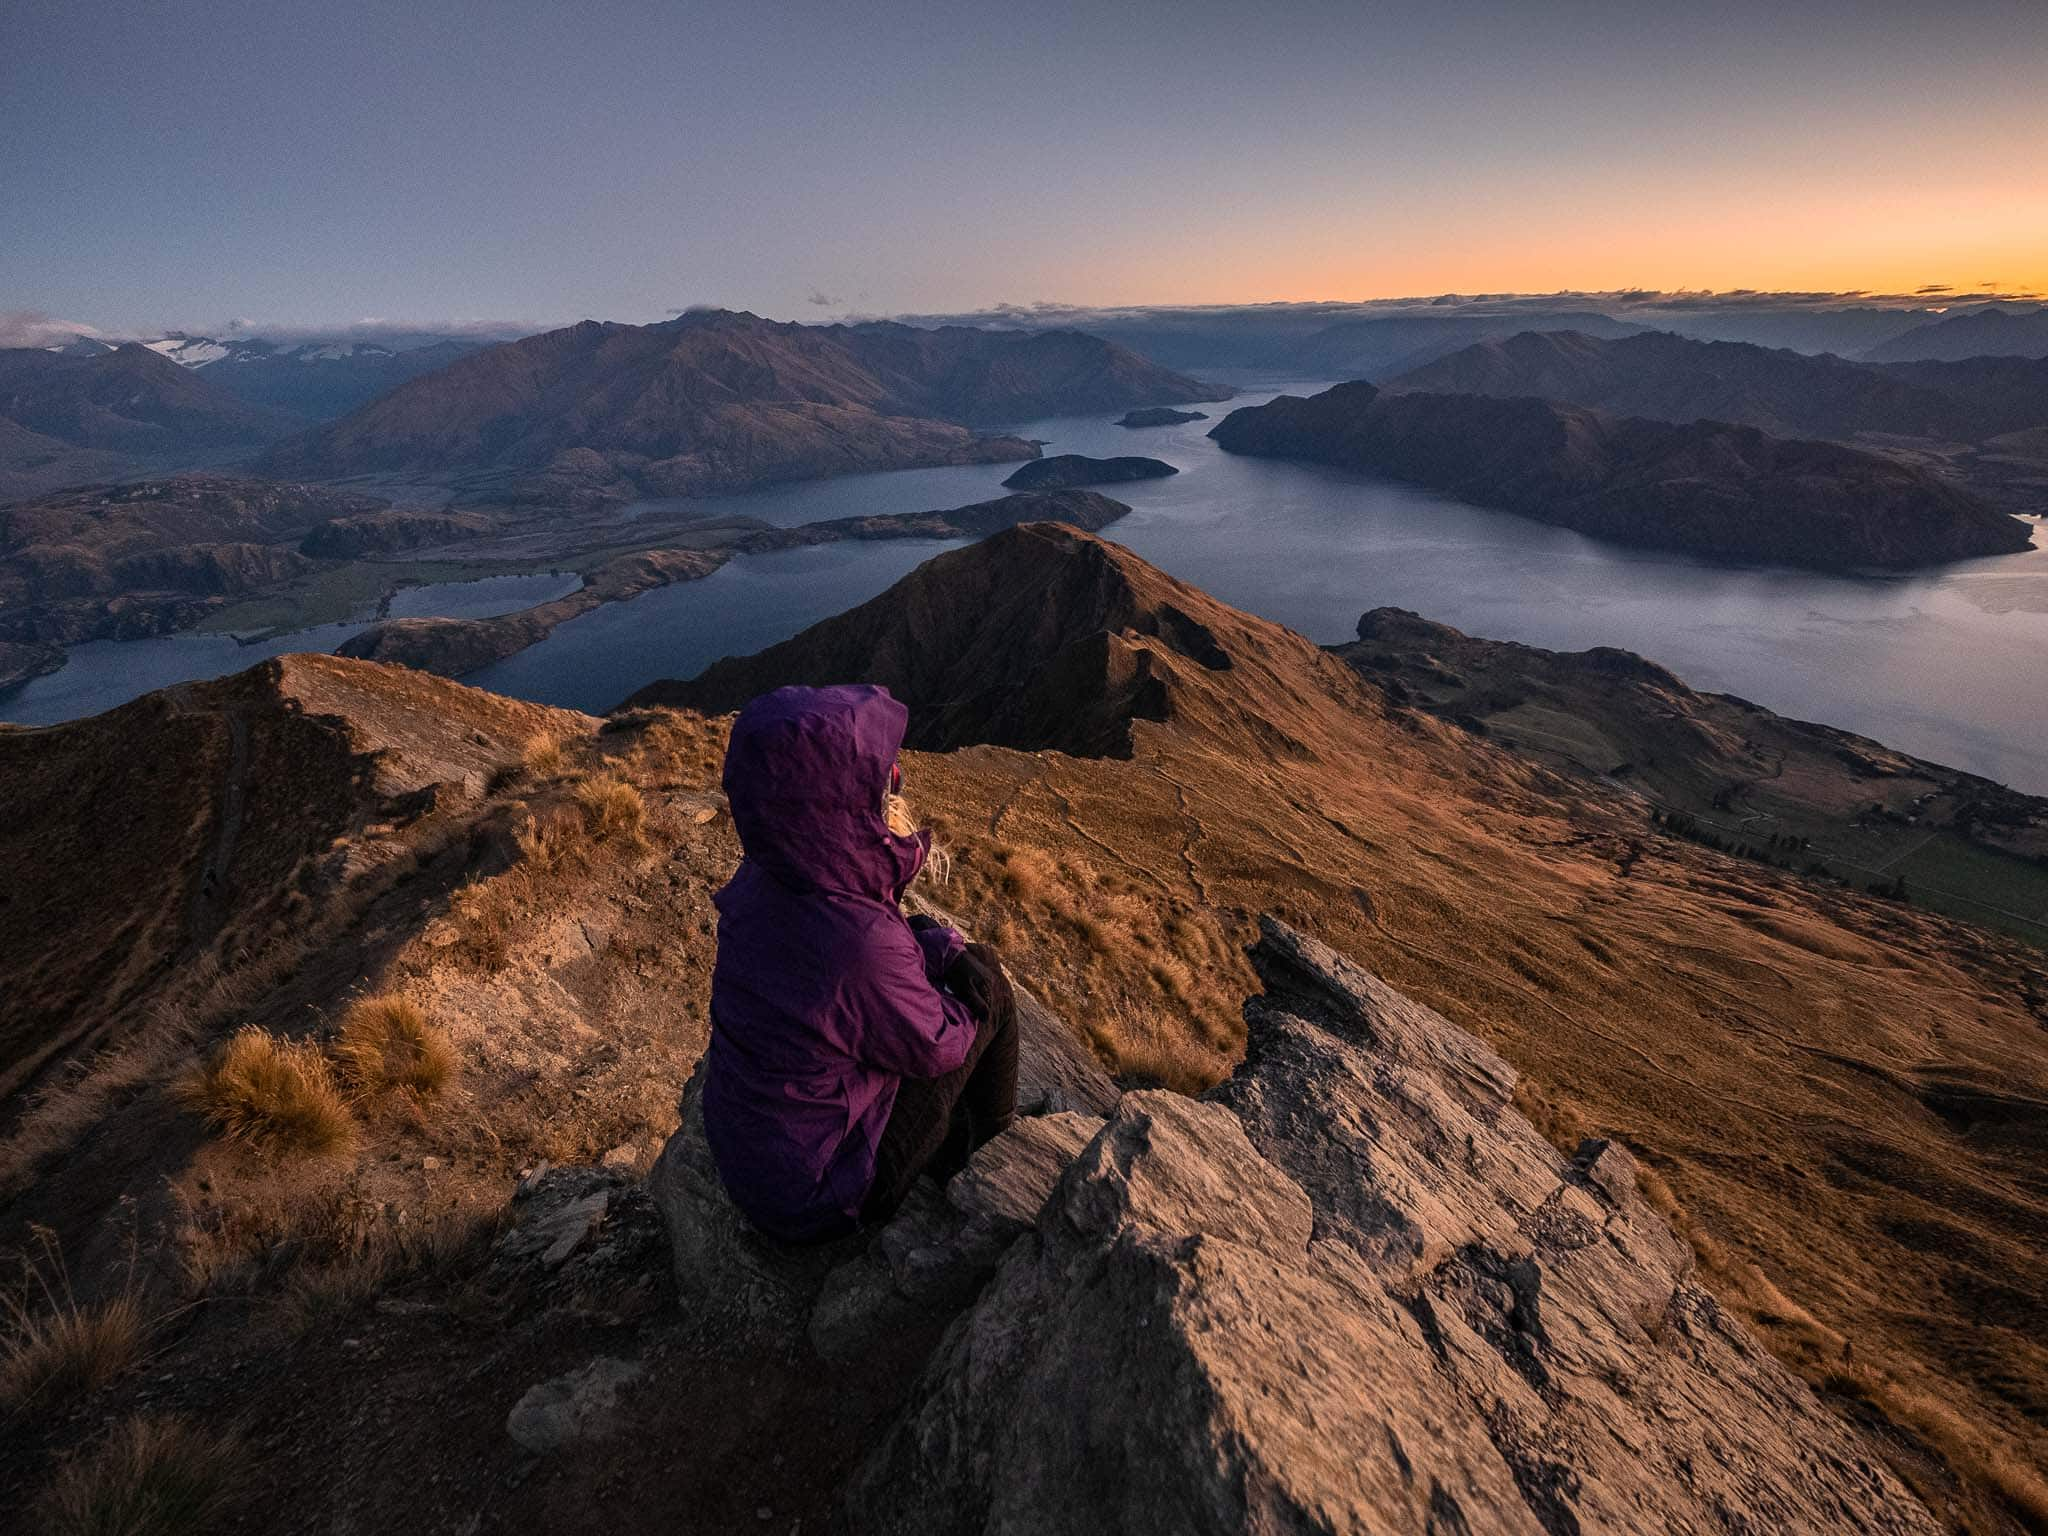 girl with purple jacket sits atop a mountain watching sunrise over a lake